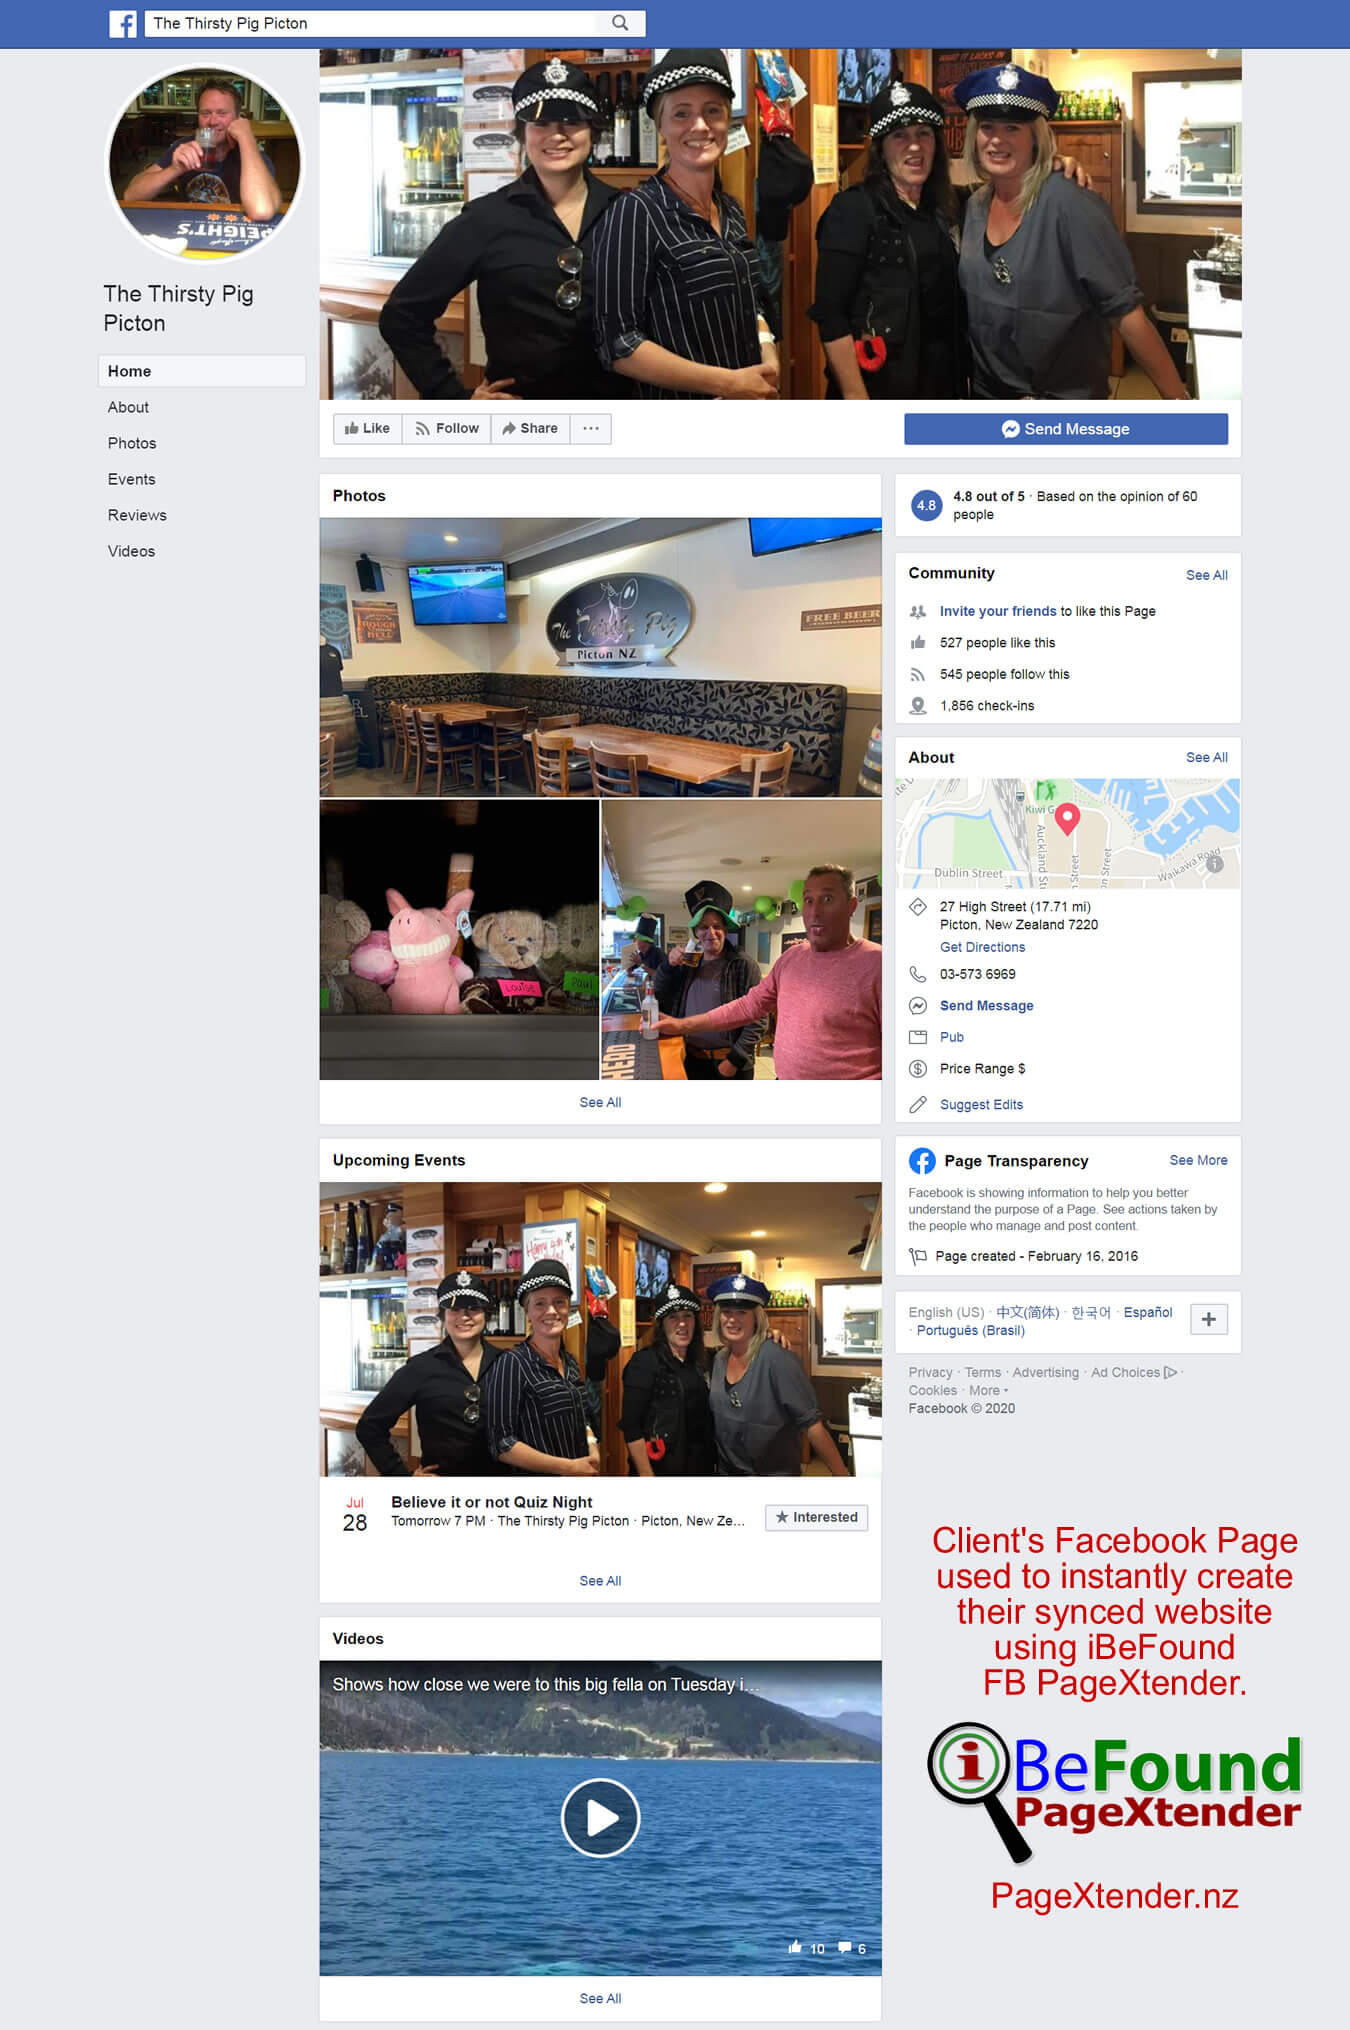 FB Page Of The Thirsty Pig Picton Used For Instant Site Creation By IBeFound PageXtender NZ